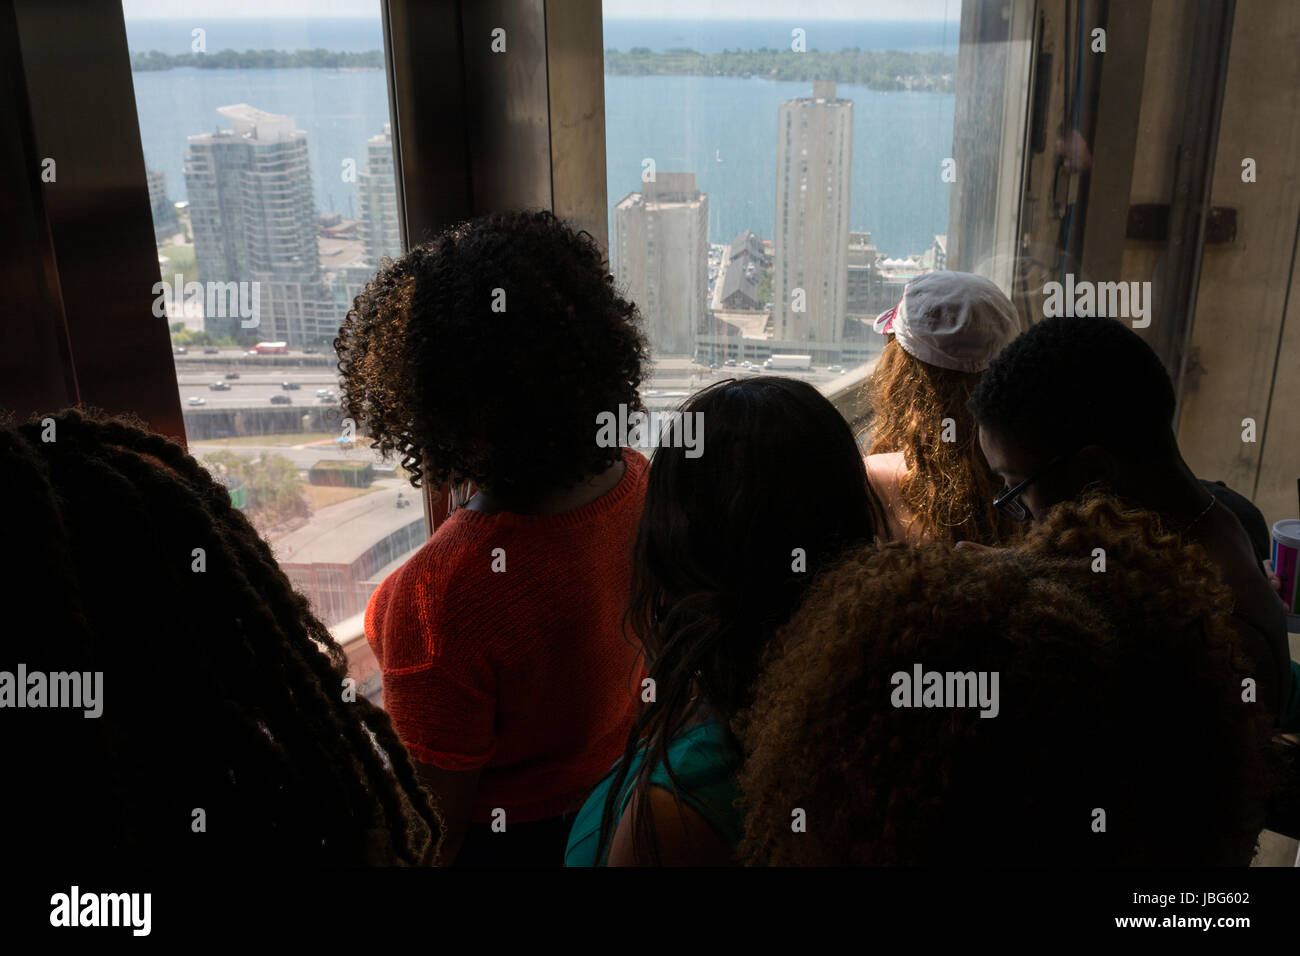 CN Tower Toronto glass elevator - Stock Image